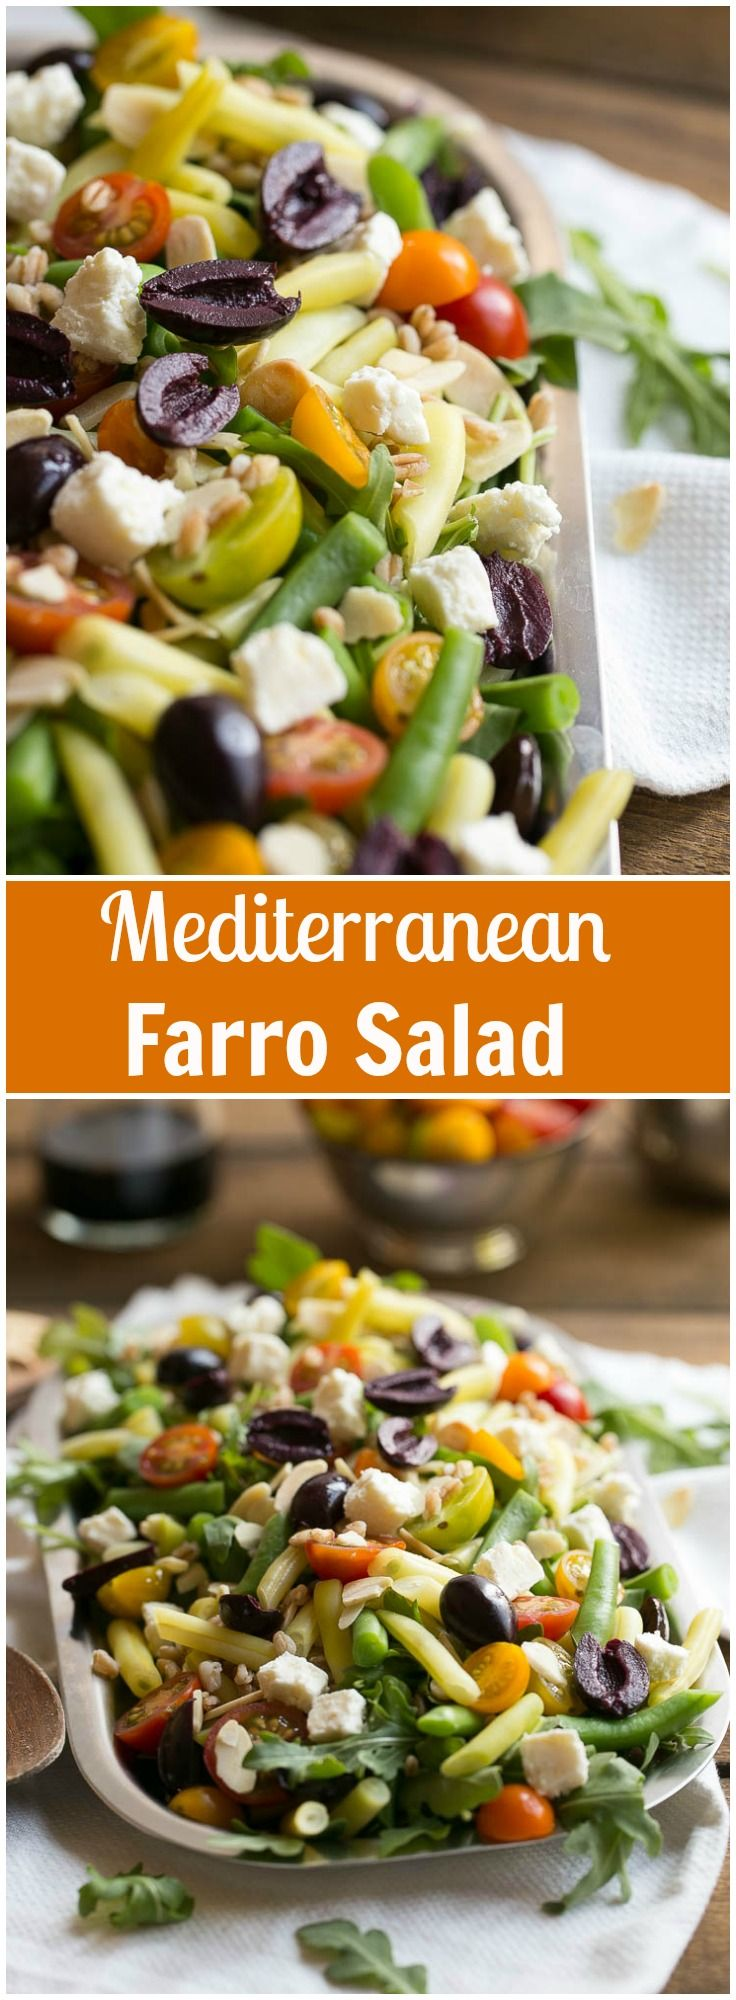 13 best images about Salads on Pinterest   Dressing ...